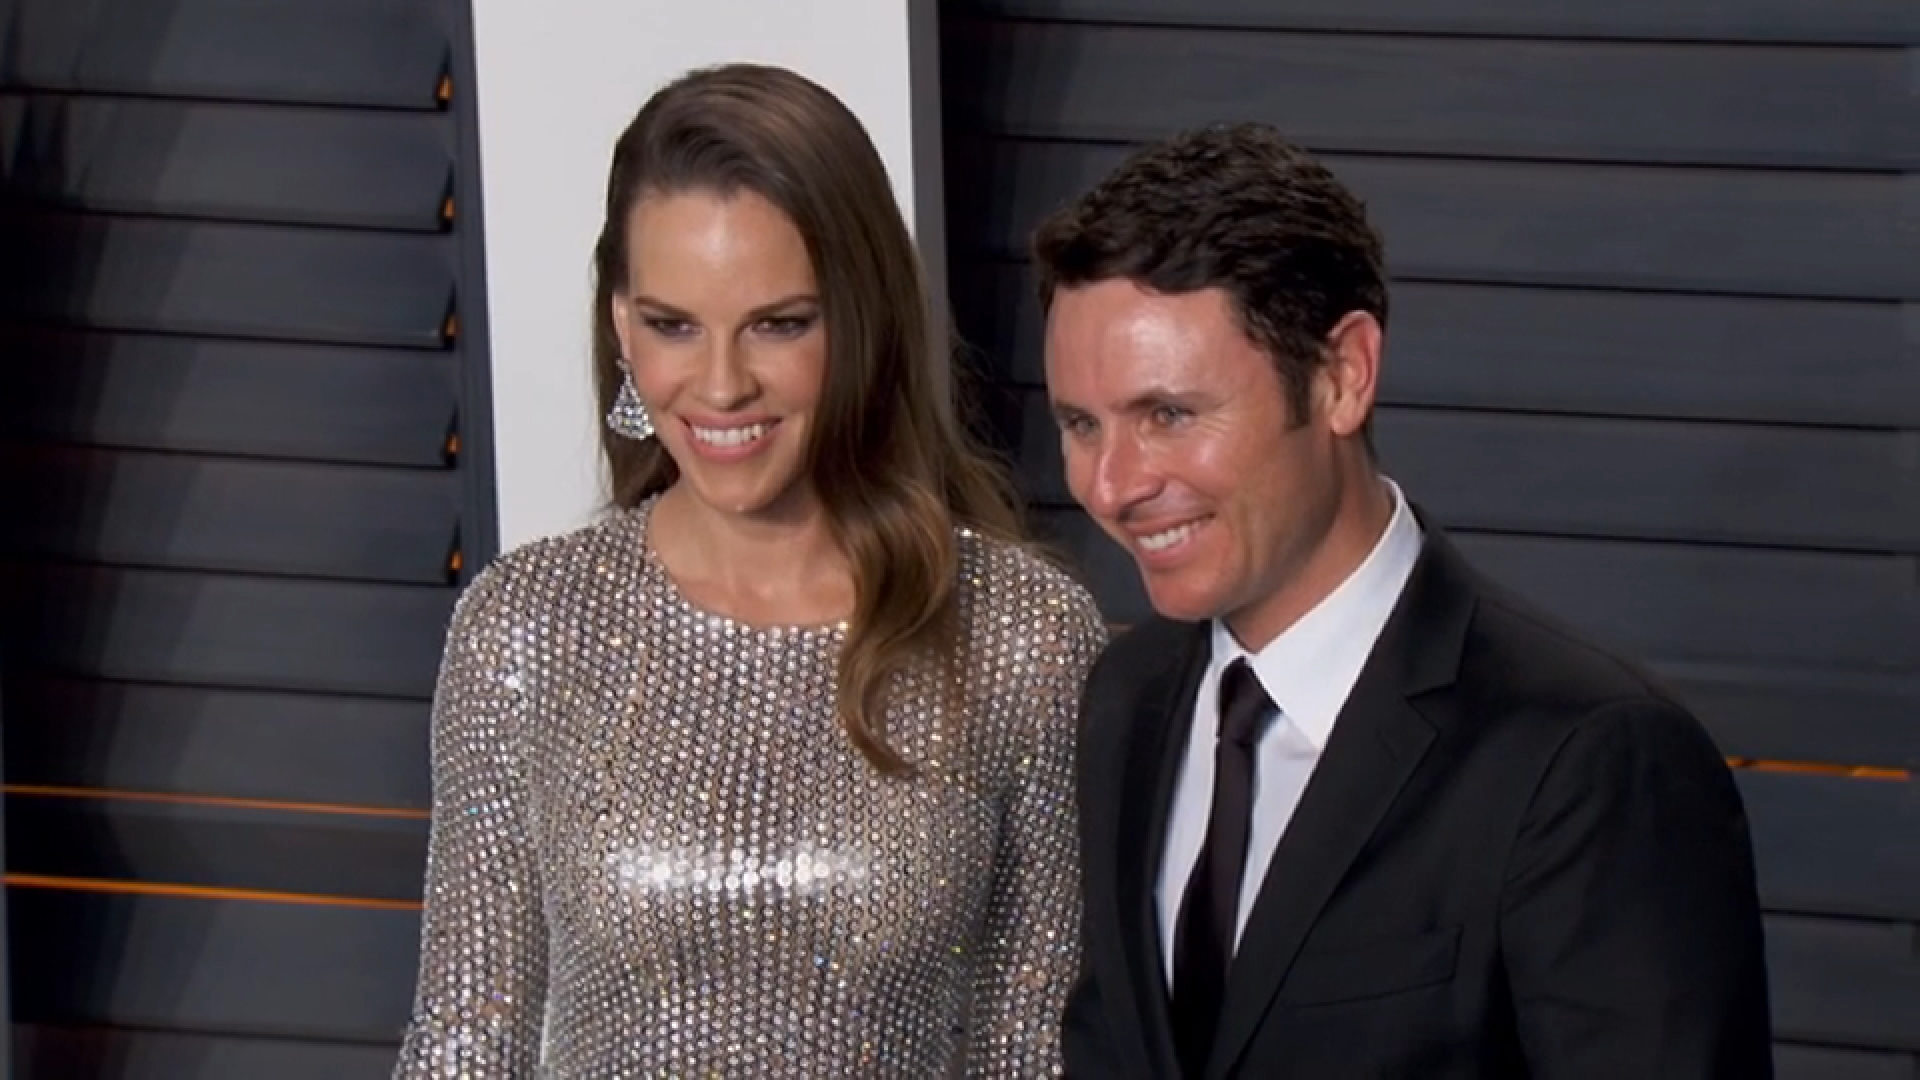 Hilary Swank Gets Engaged